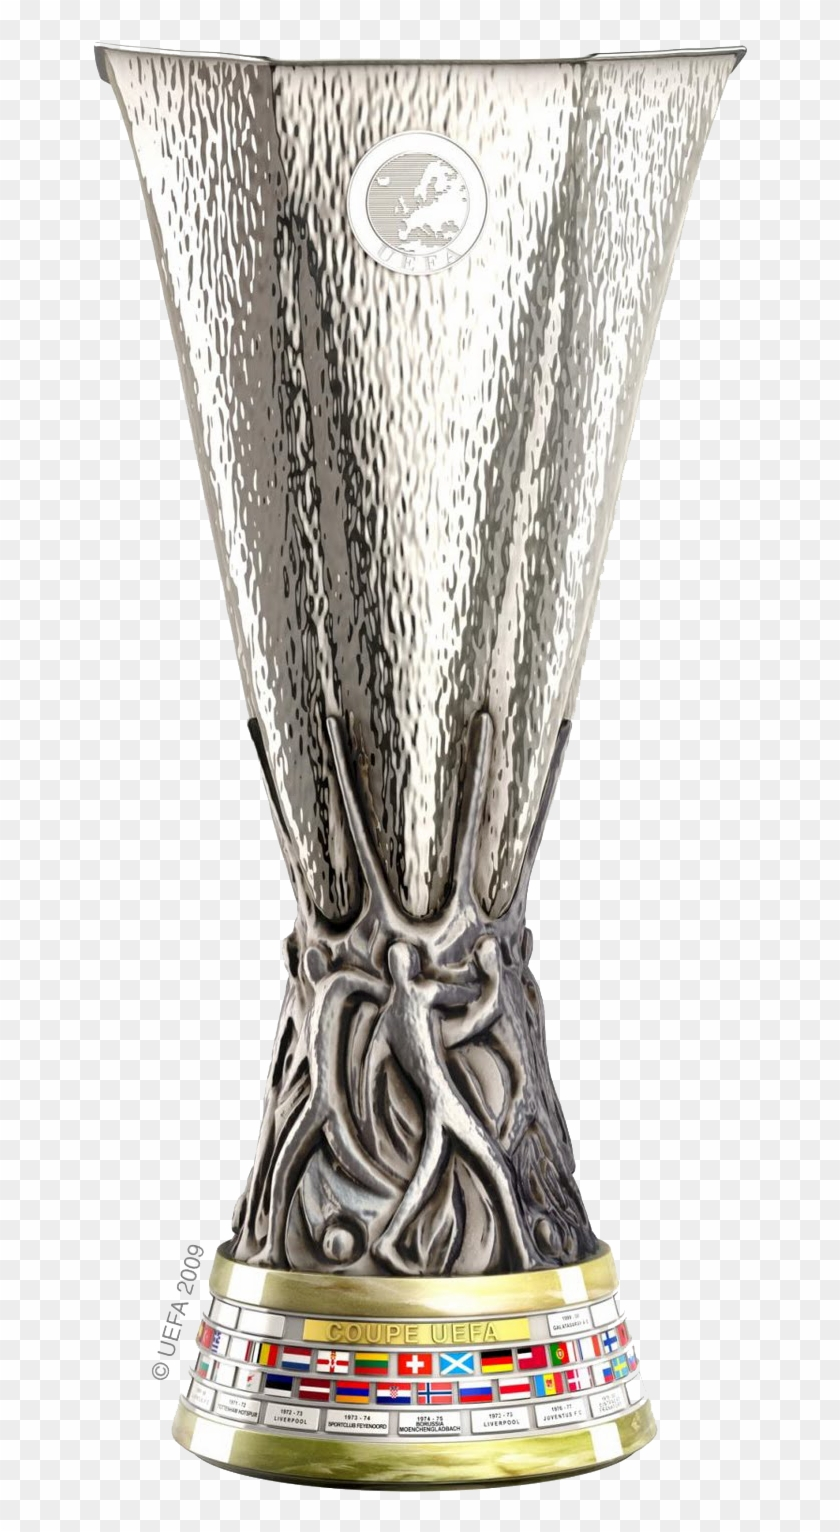 The Best Uefa Europa League Trophy Png